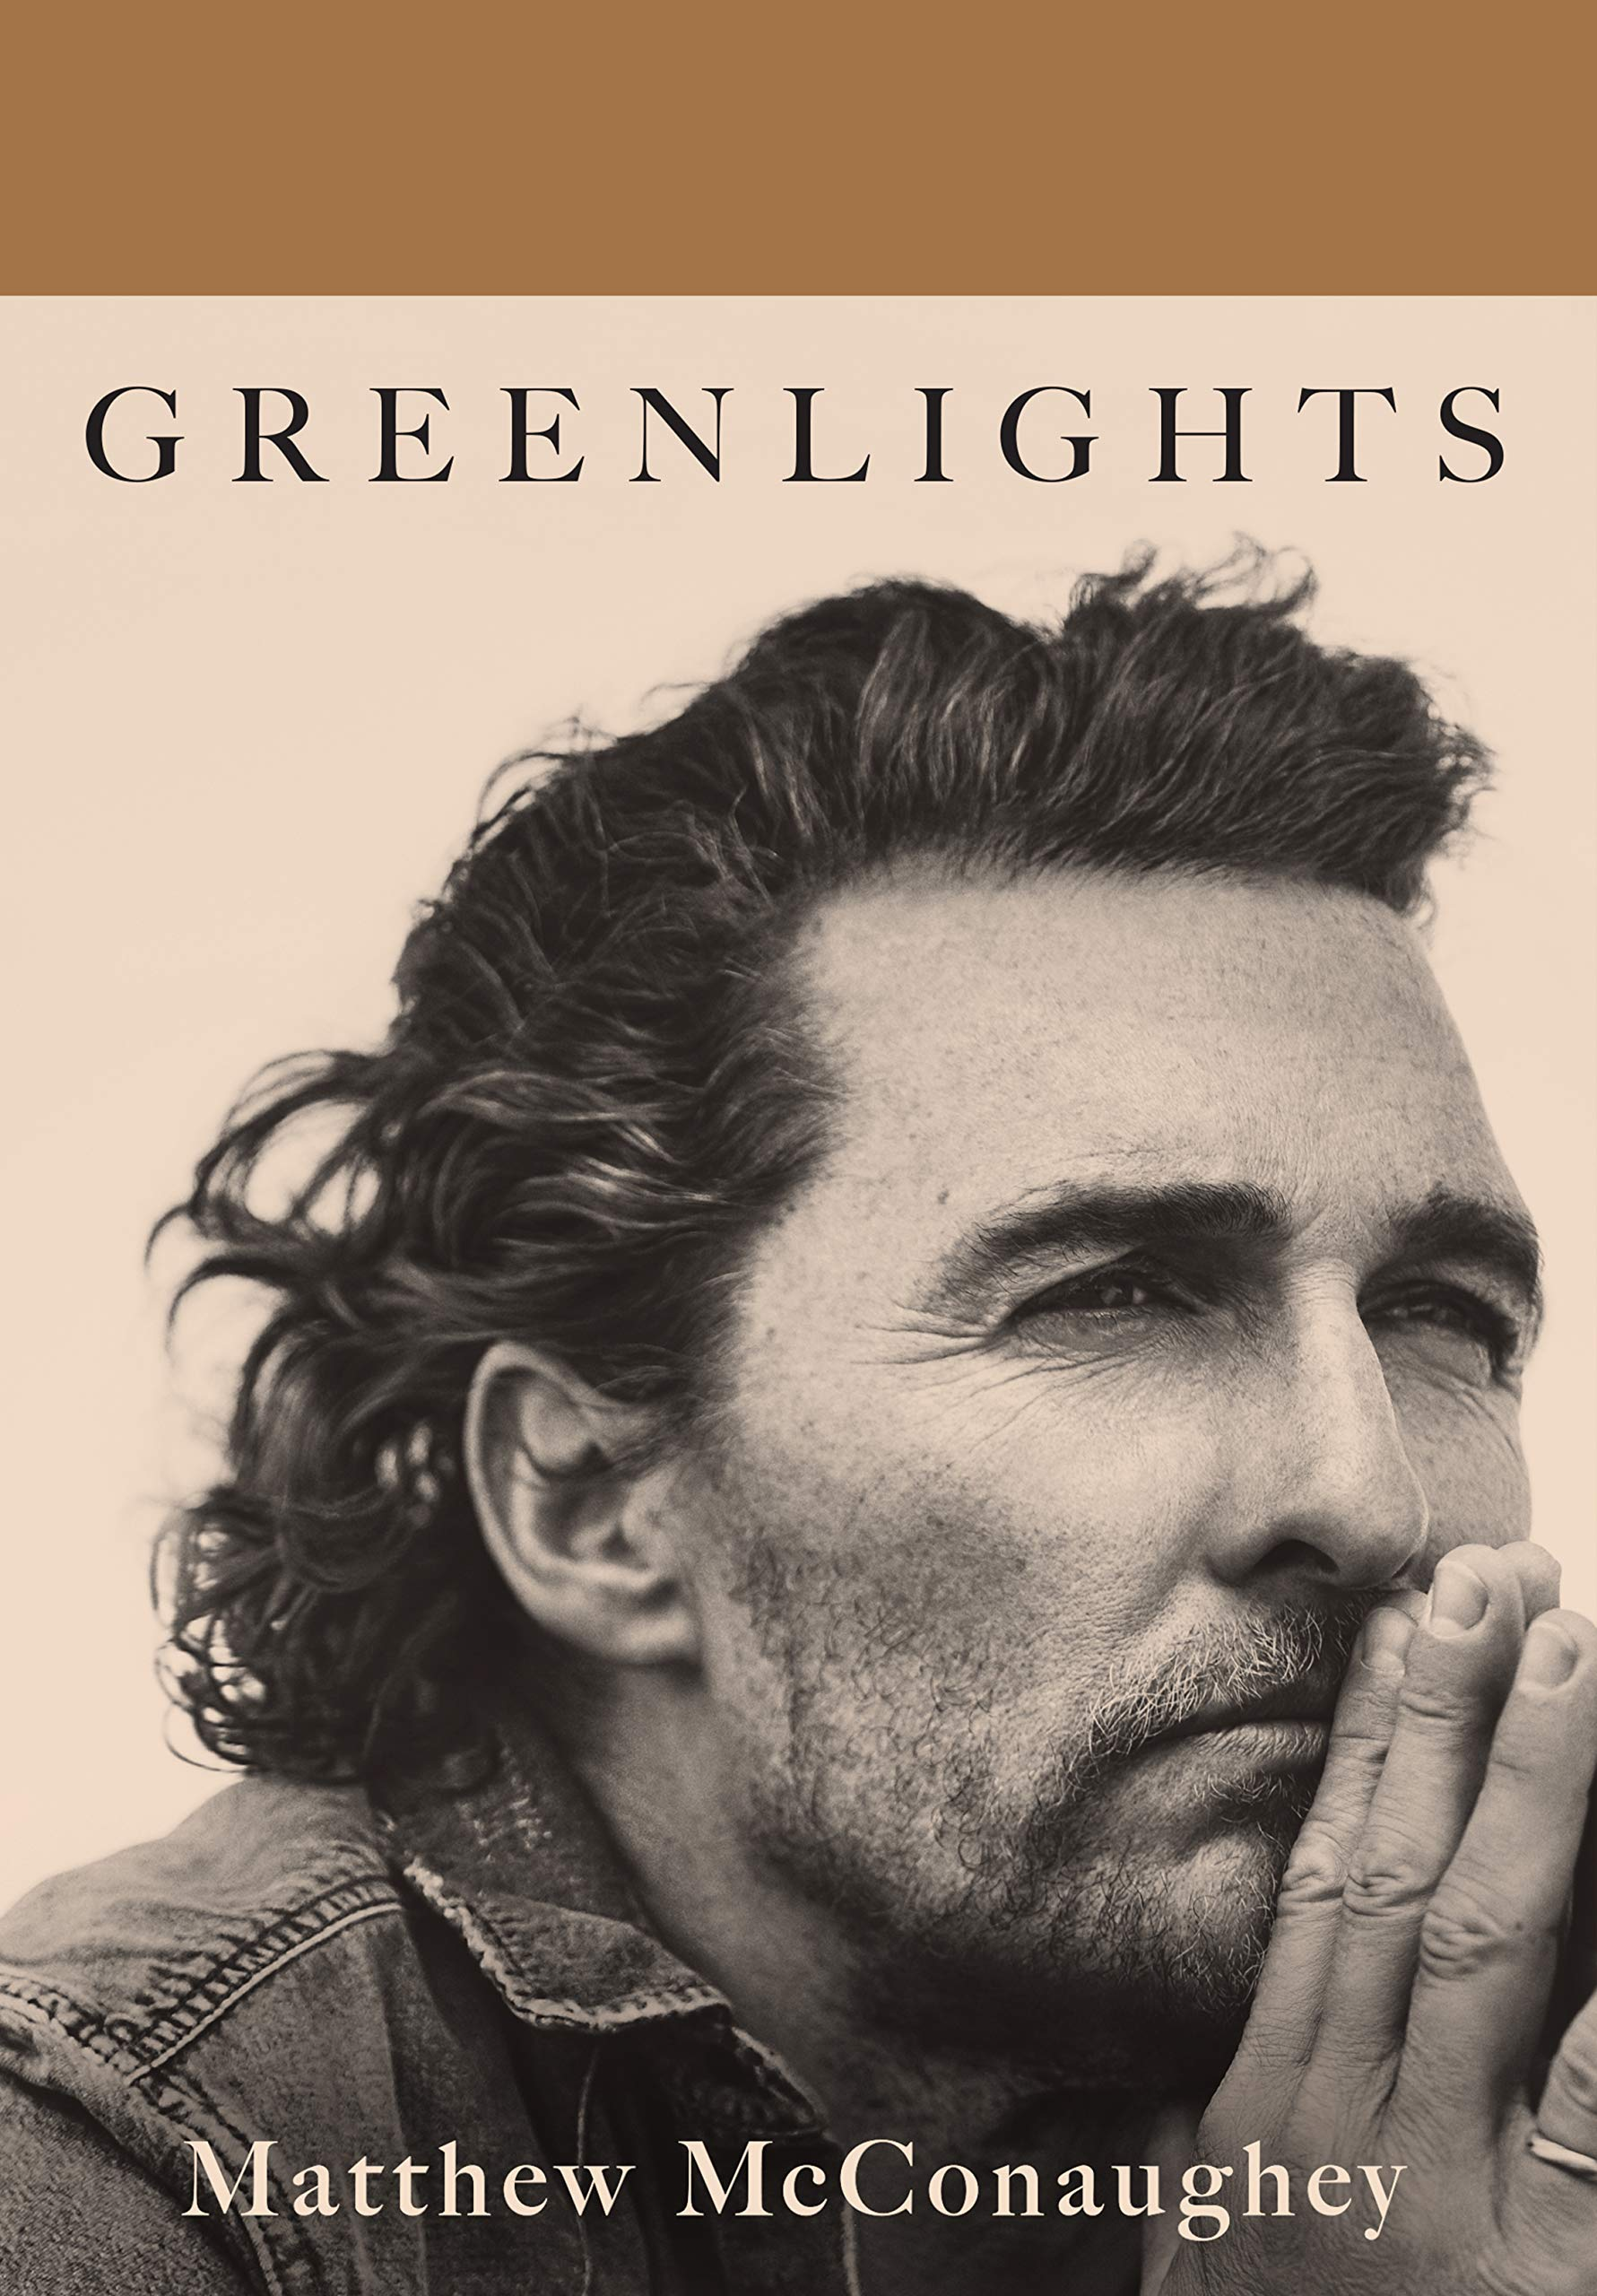 Cover image of Greenlights by Matthew McConaughey